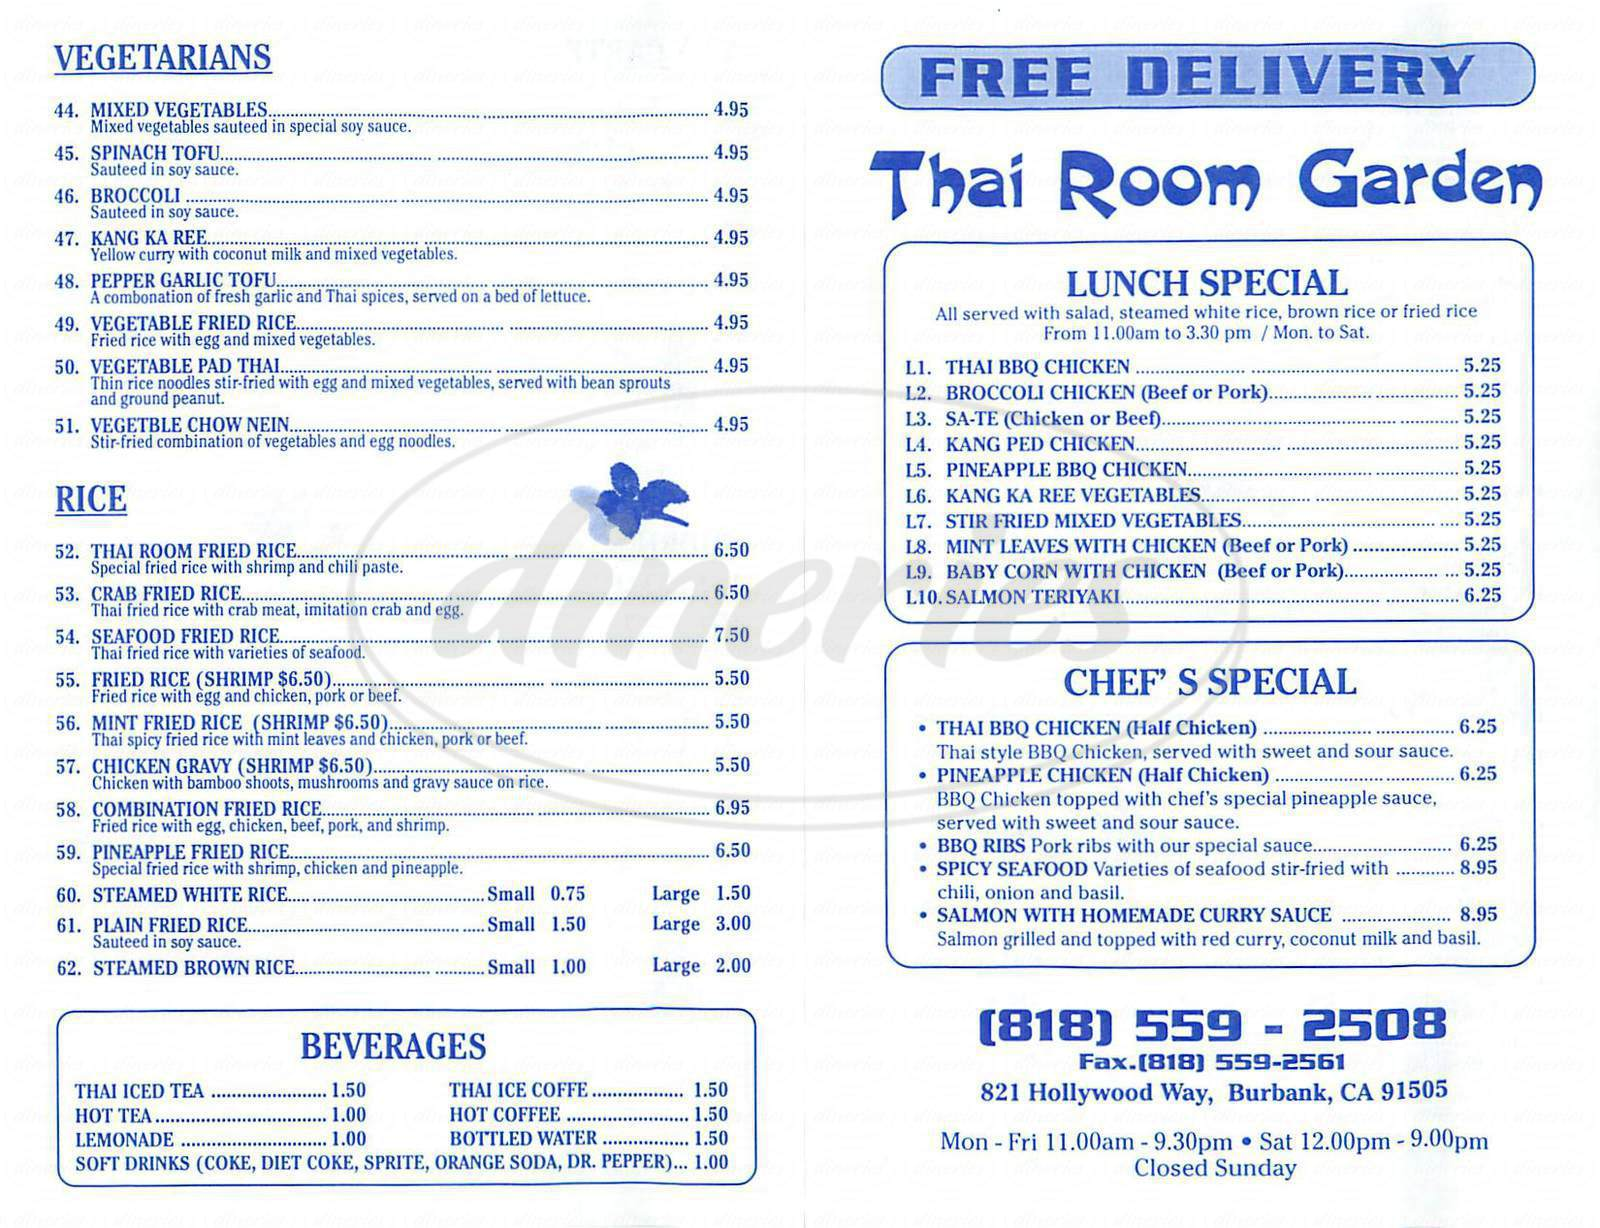 menu for Thai Room Garden